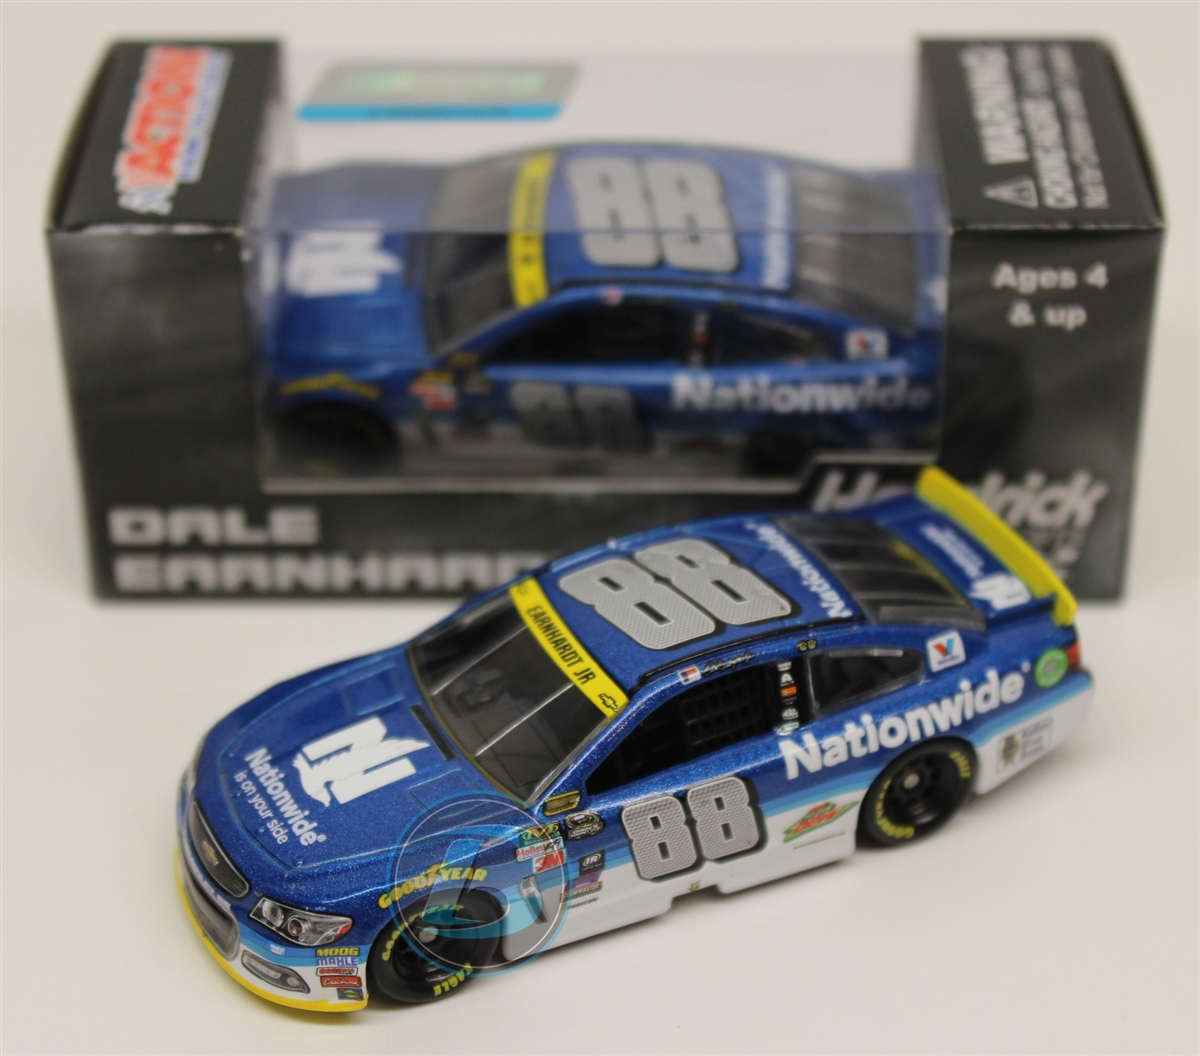 Dale Earnhardt Jr 2015 Nationwide Chase for the Cup 1:64 Nascar Diecast by Lionel Racing